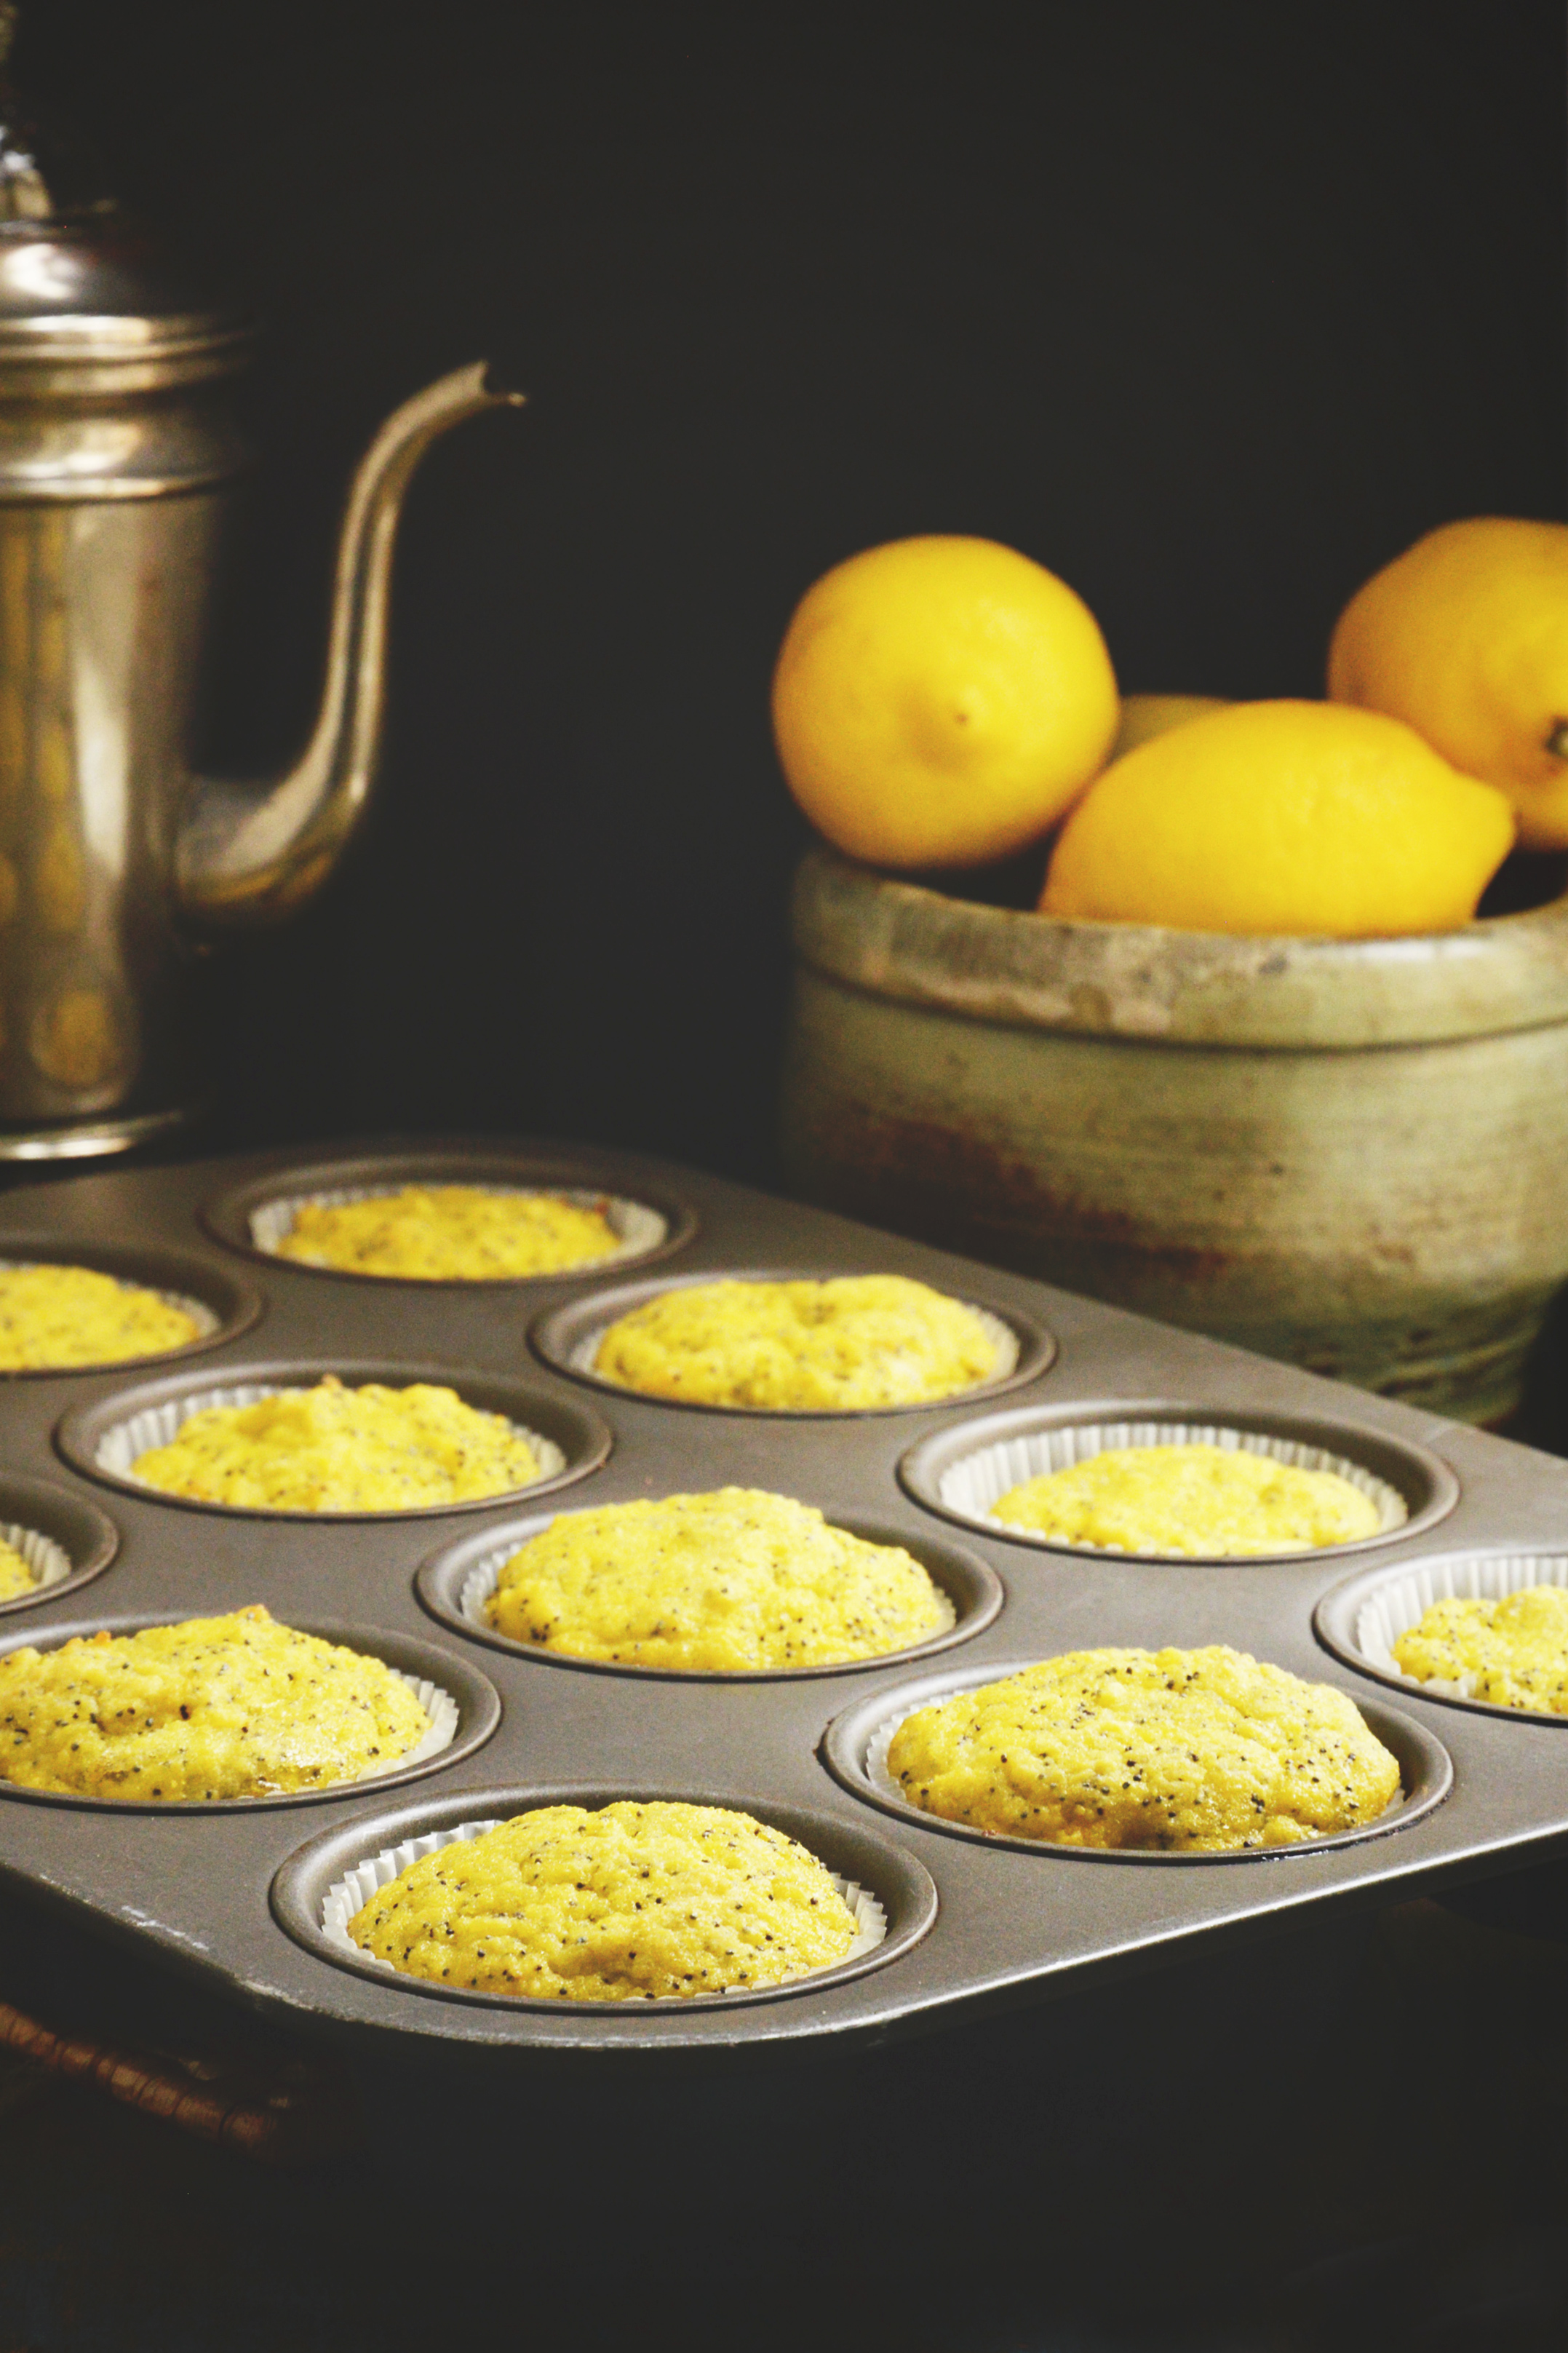 Lemon-Poppy-Seed-Muffins-in the tin with lemons and coffee pot behind.